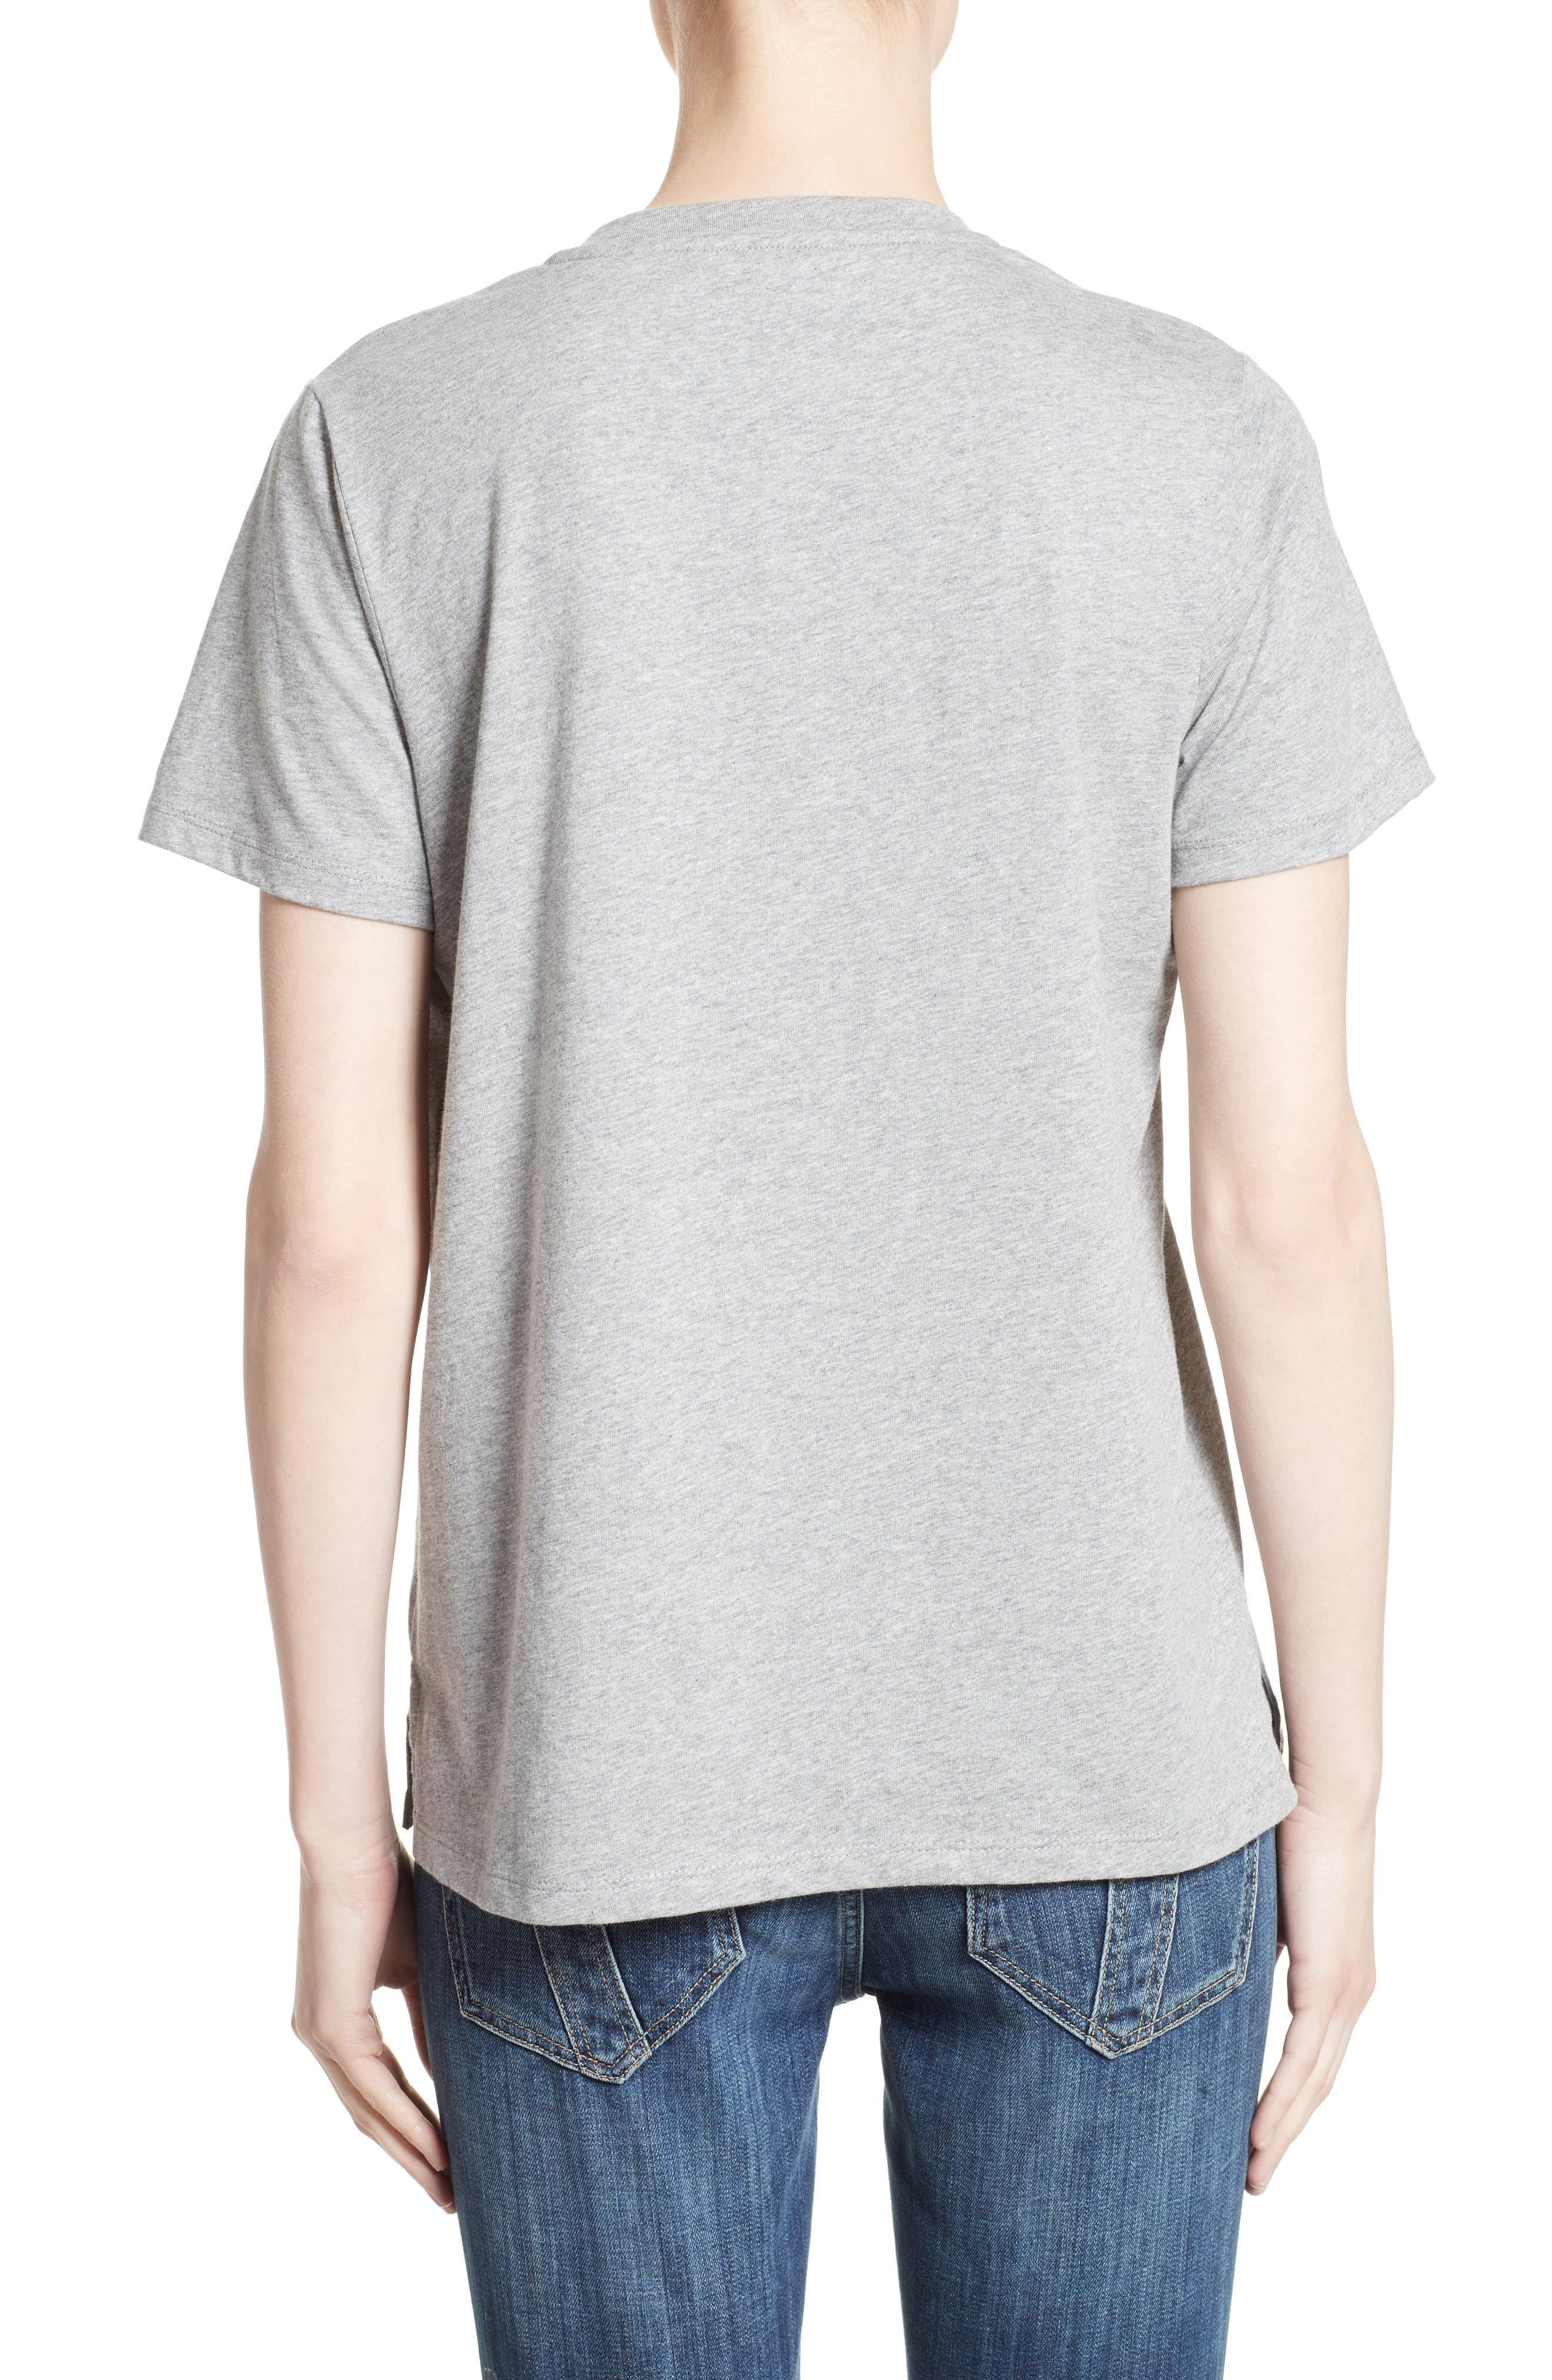 Burberry Womens Tops Shirts Nordstrom